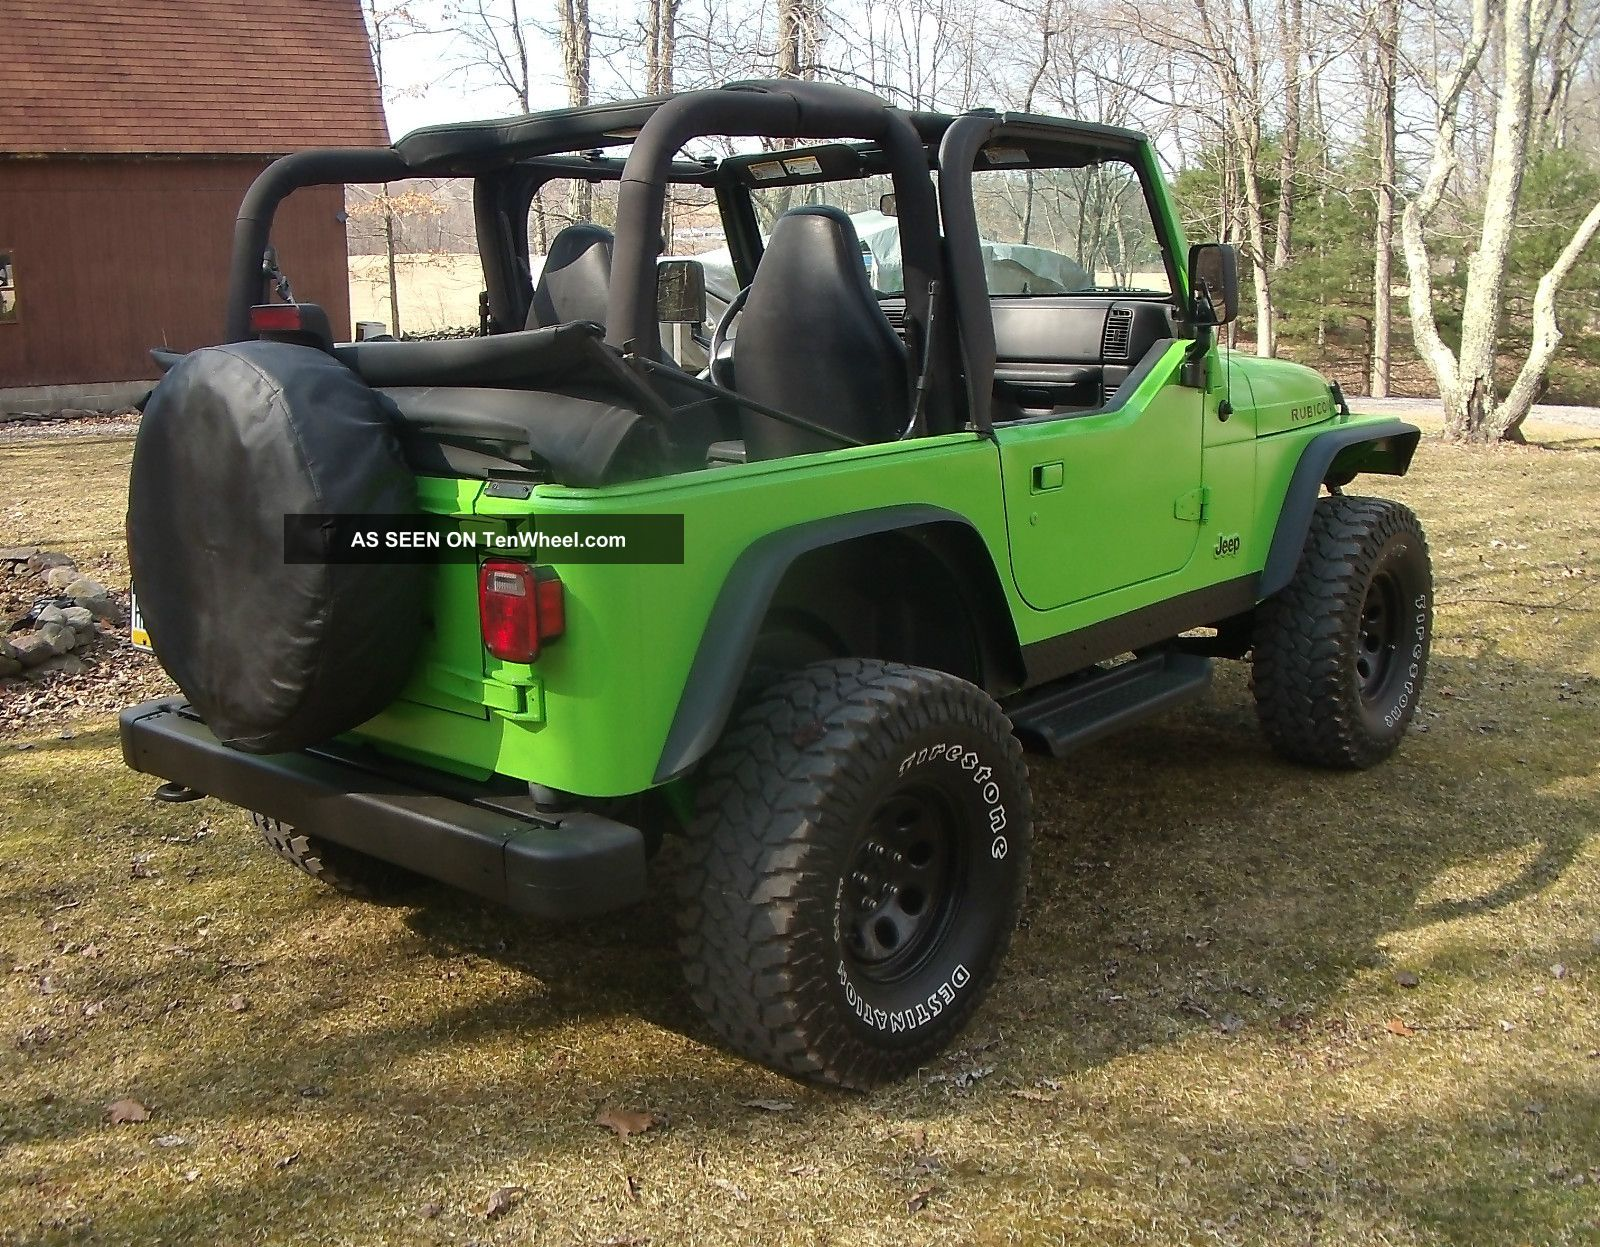 ... 2001 Jeep Wrangler 4. 0l Neon Green (lifted) 3 Day Wrangler Photo ...